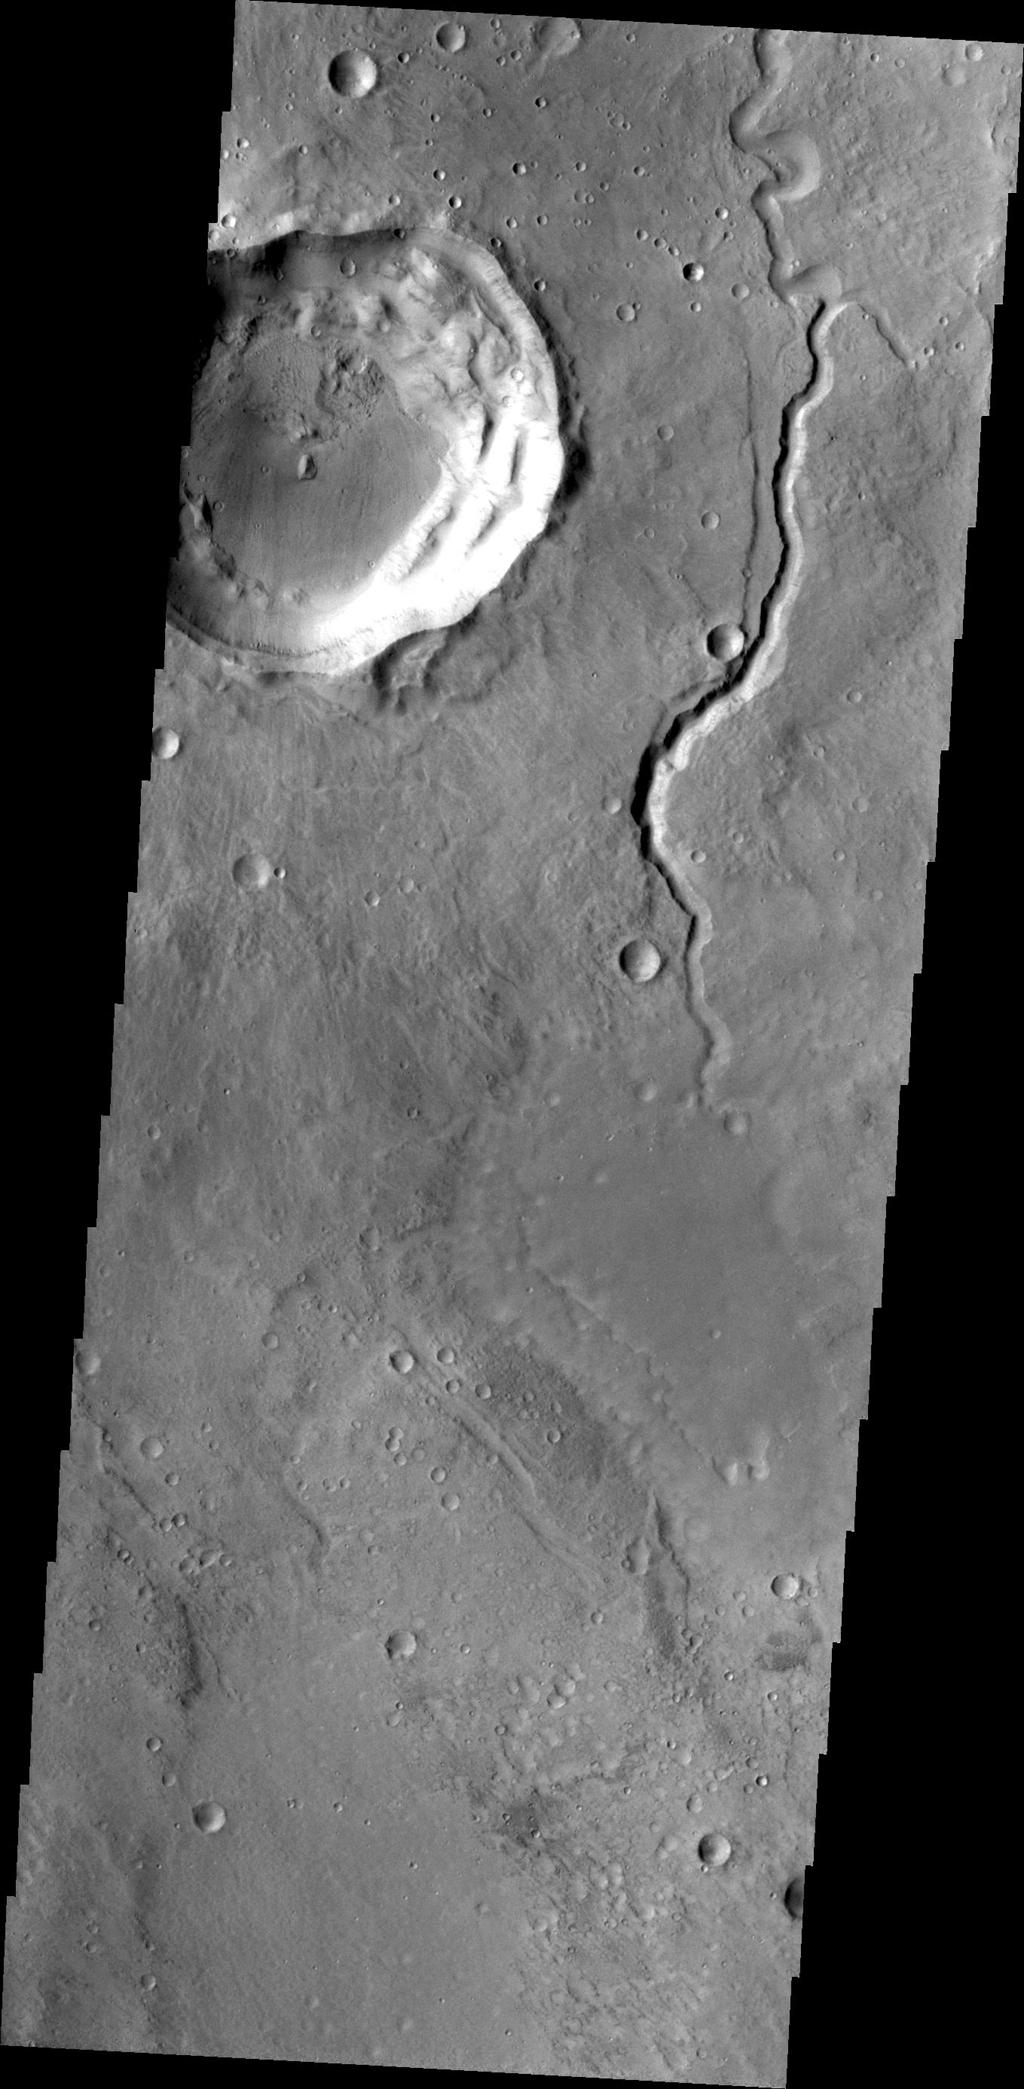 This image captured by NASA's 2001 Mars Odyssey shows a small channel located on the northern margin of Arabia Terra.